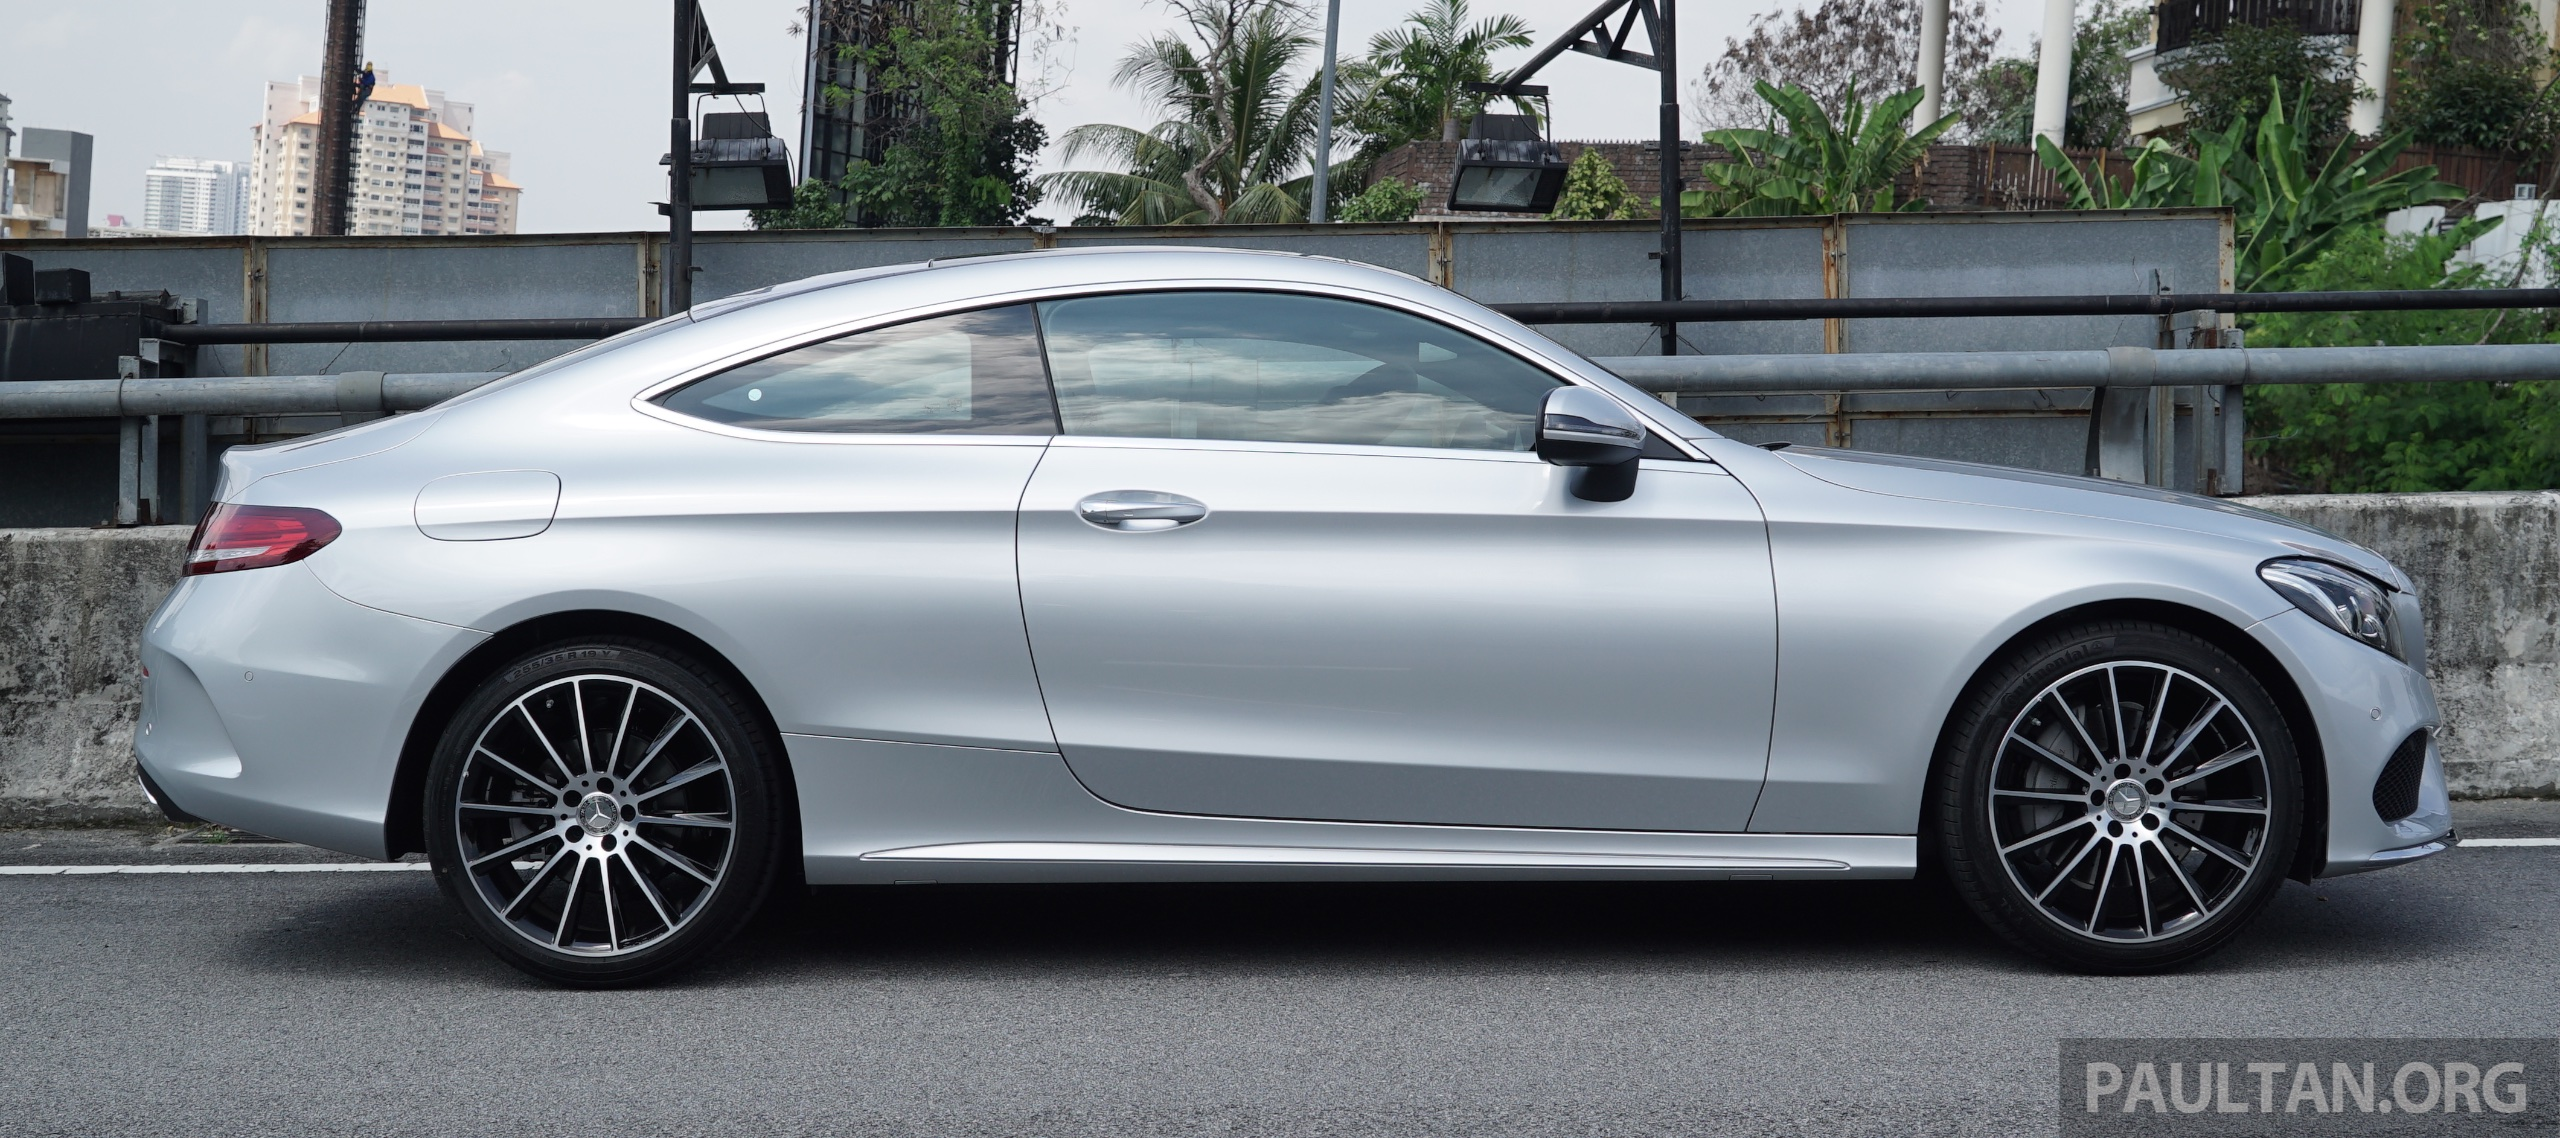 Mercedes Amg Coupe 2017 >> C205 Mercedes-Benz C-Class Coupe launched in Malaysia ...